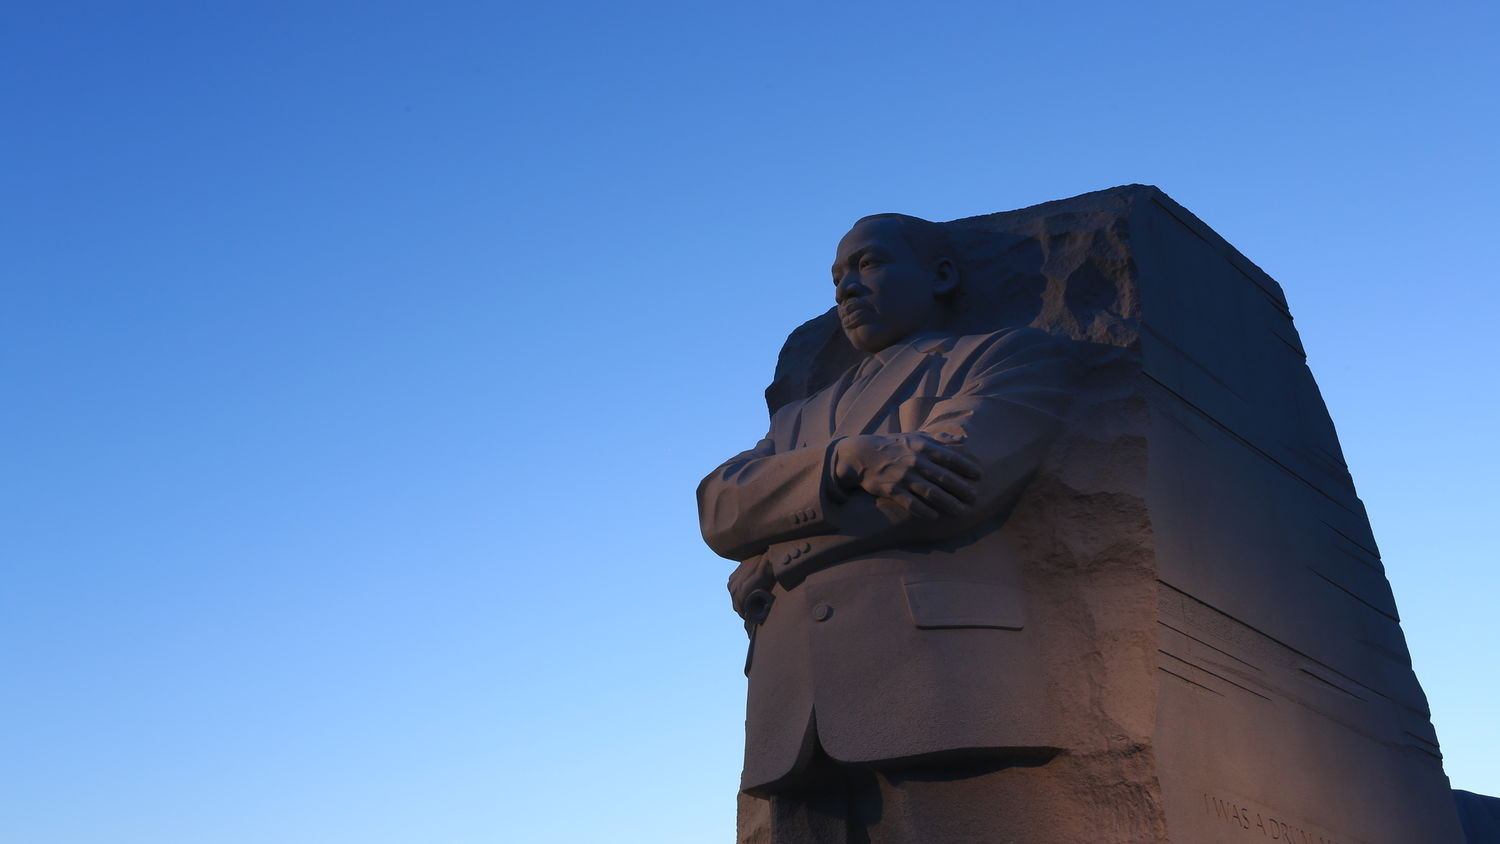 Martin Luther King, Jr. Memorial, Washington D.C.